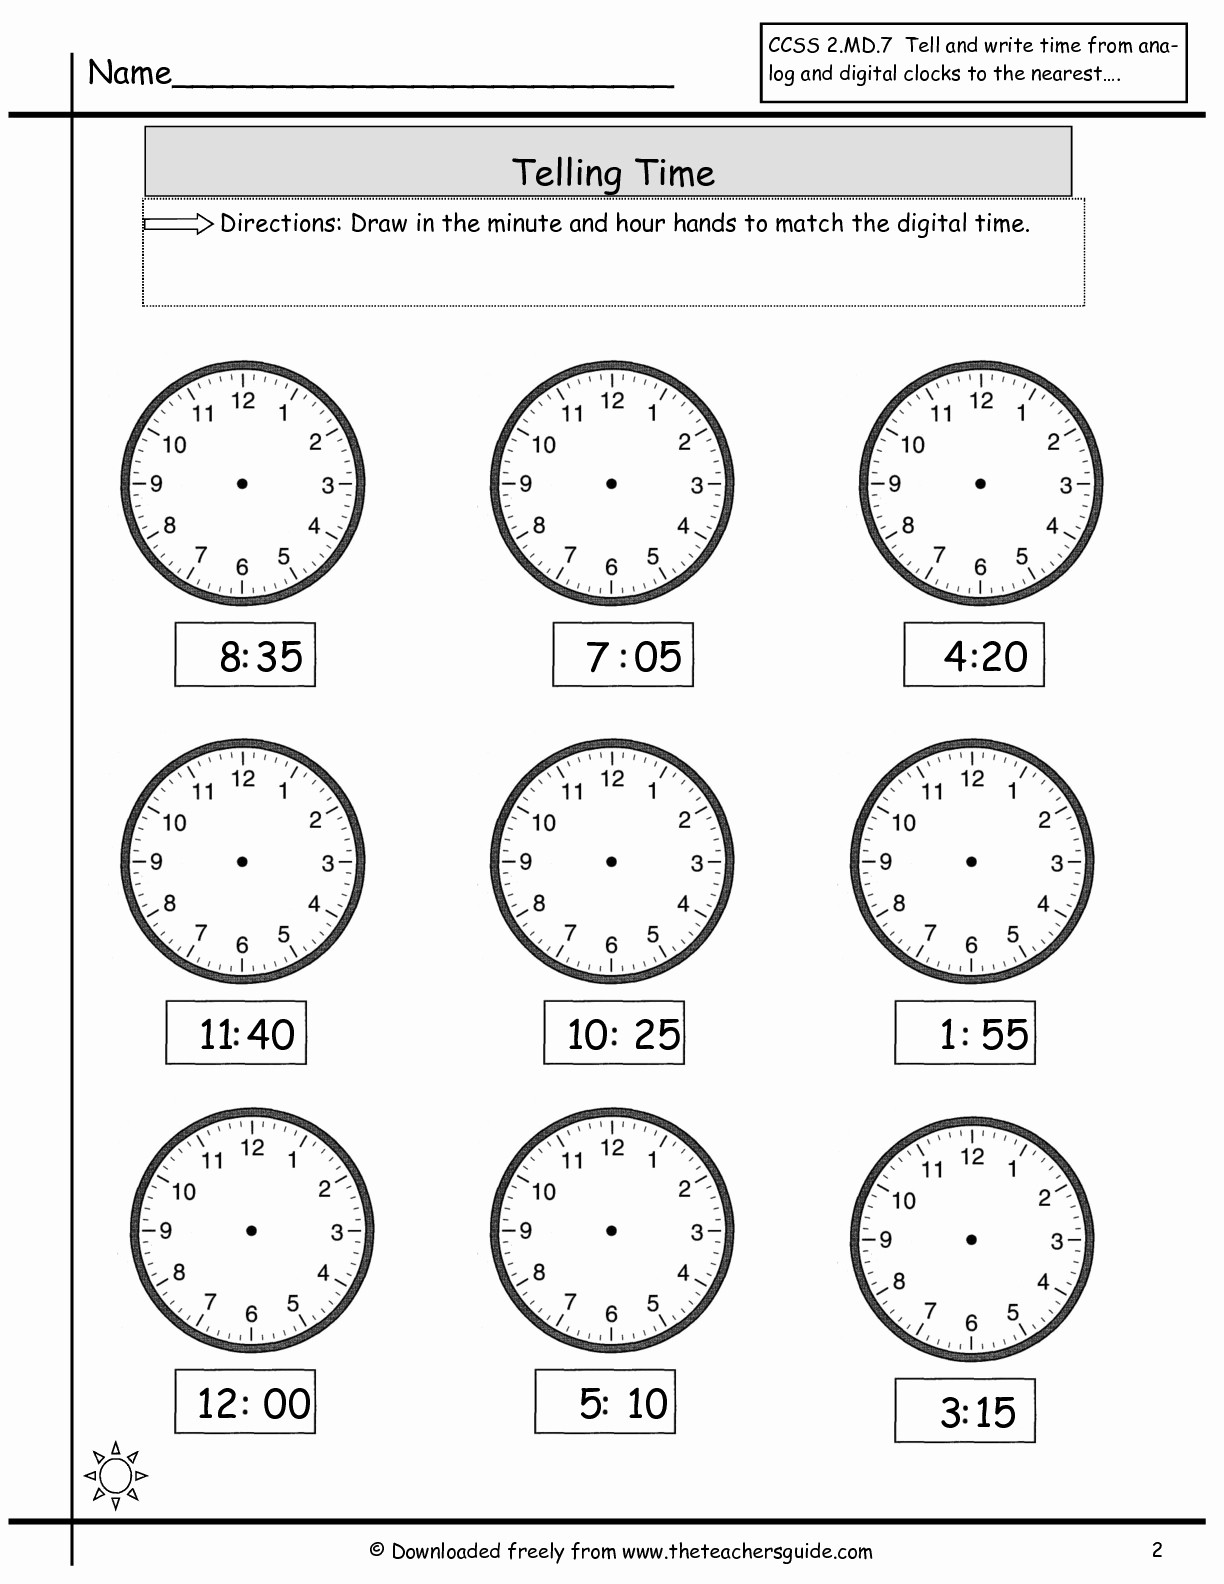 Time Clock Correction form Template Inspirational Free Math Printouts From the Teacher S Guide